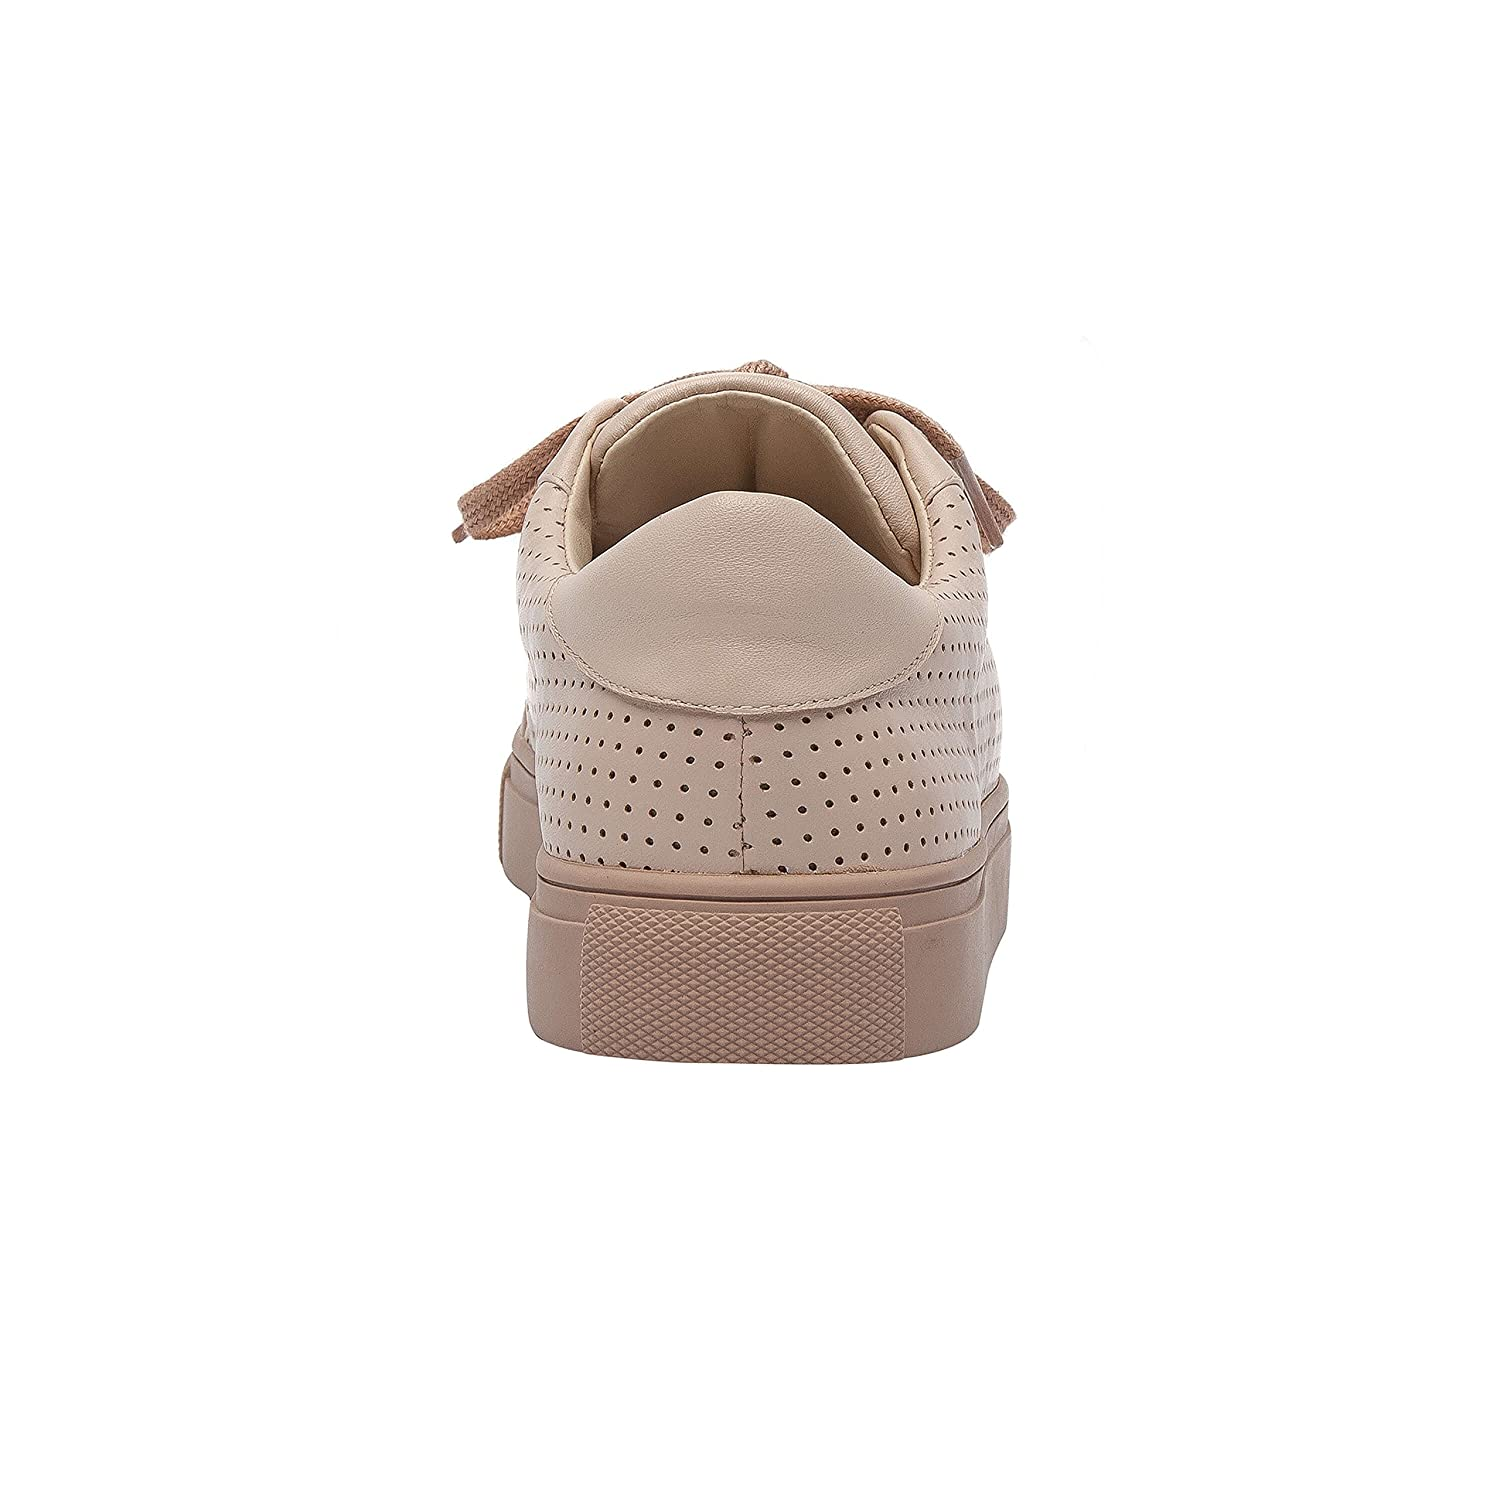 OLLYN Leather | Women's Lace-up Perforated Leather OLLYN Or Suede Comfortable Fashion Sneaker B07B6F3S71 7 B(M) US|Blush Leather 18575a